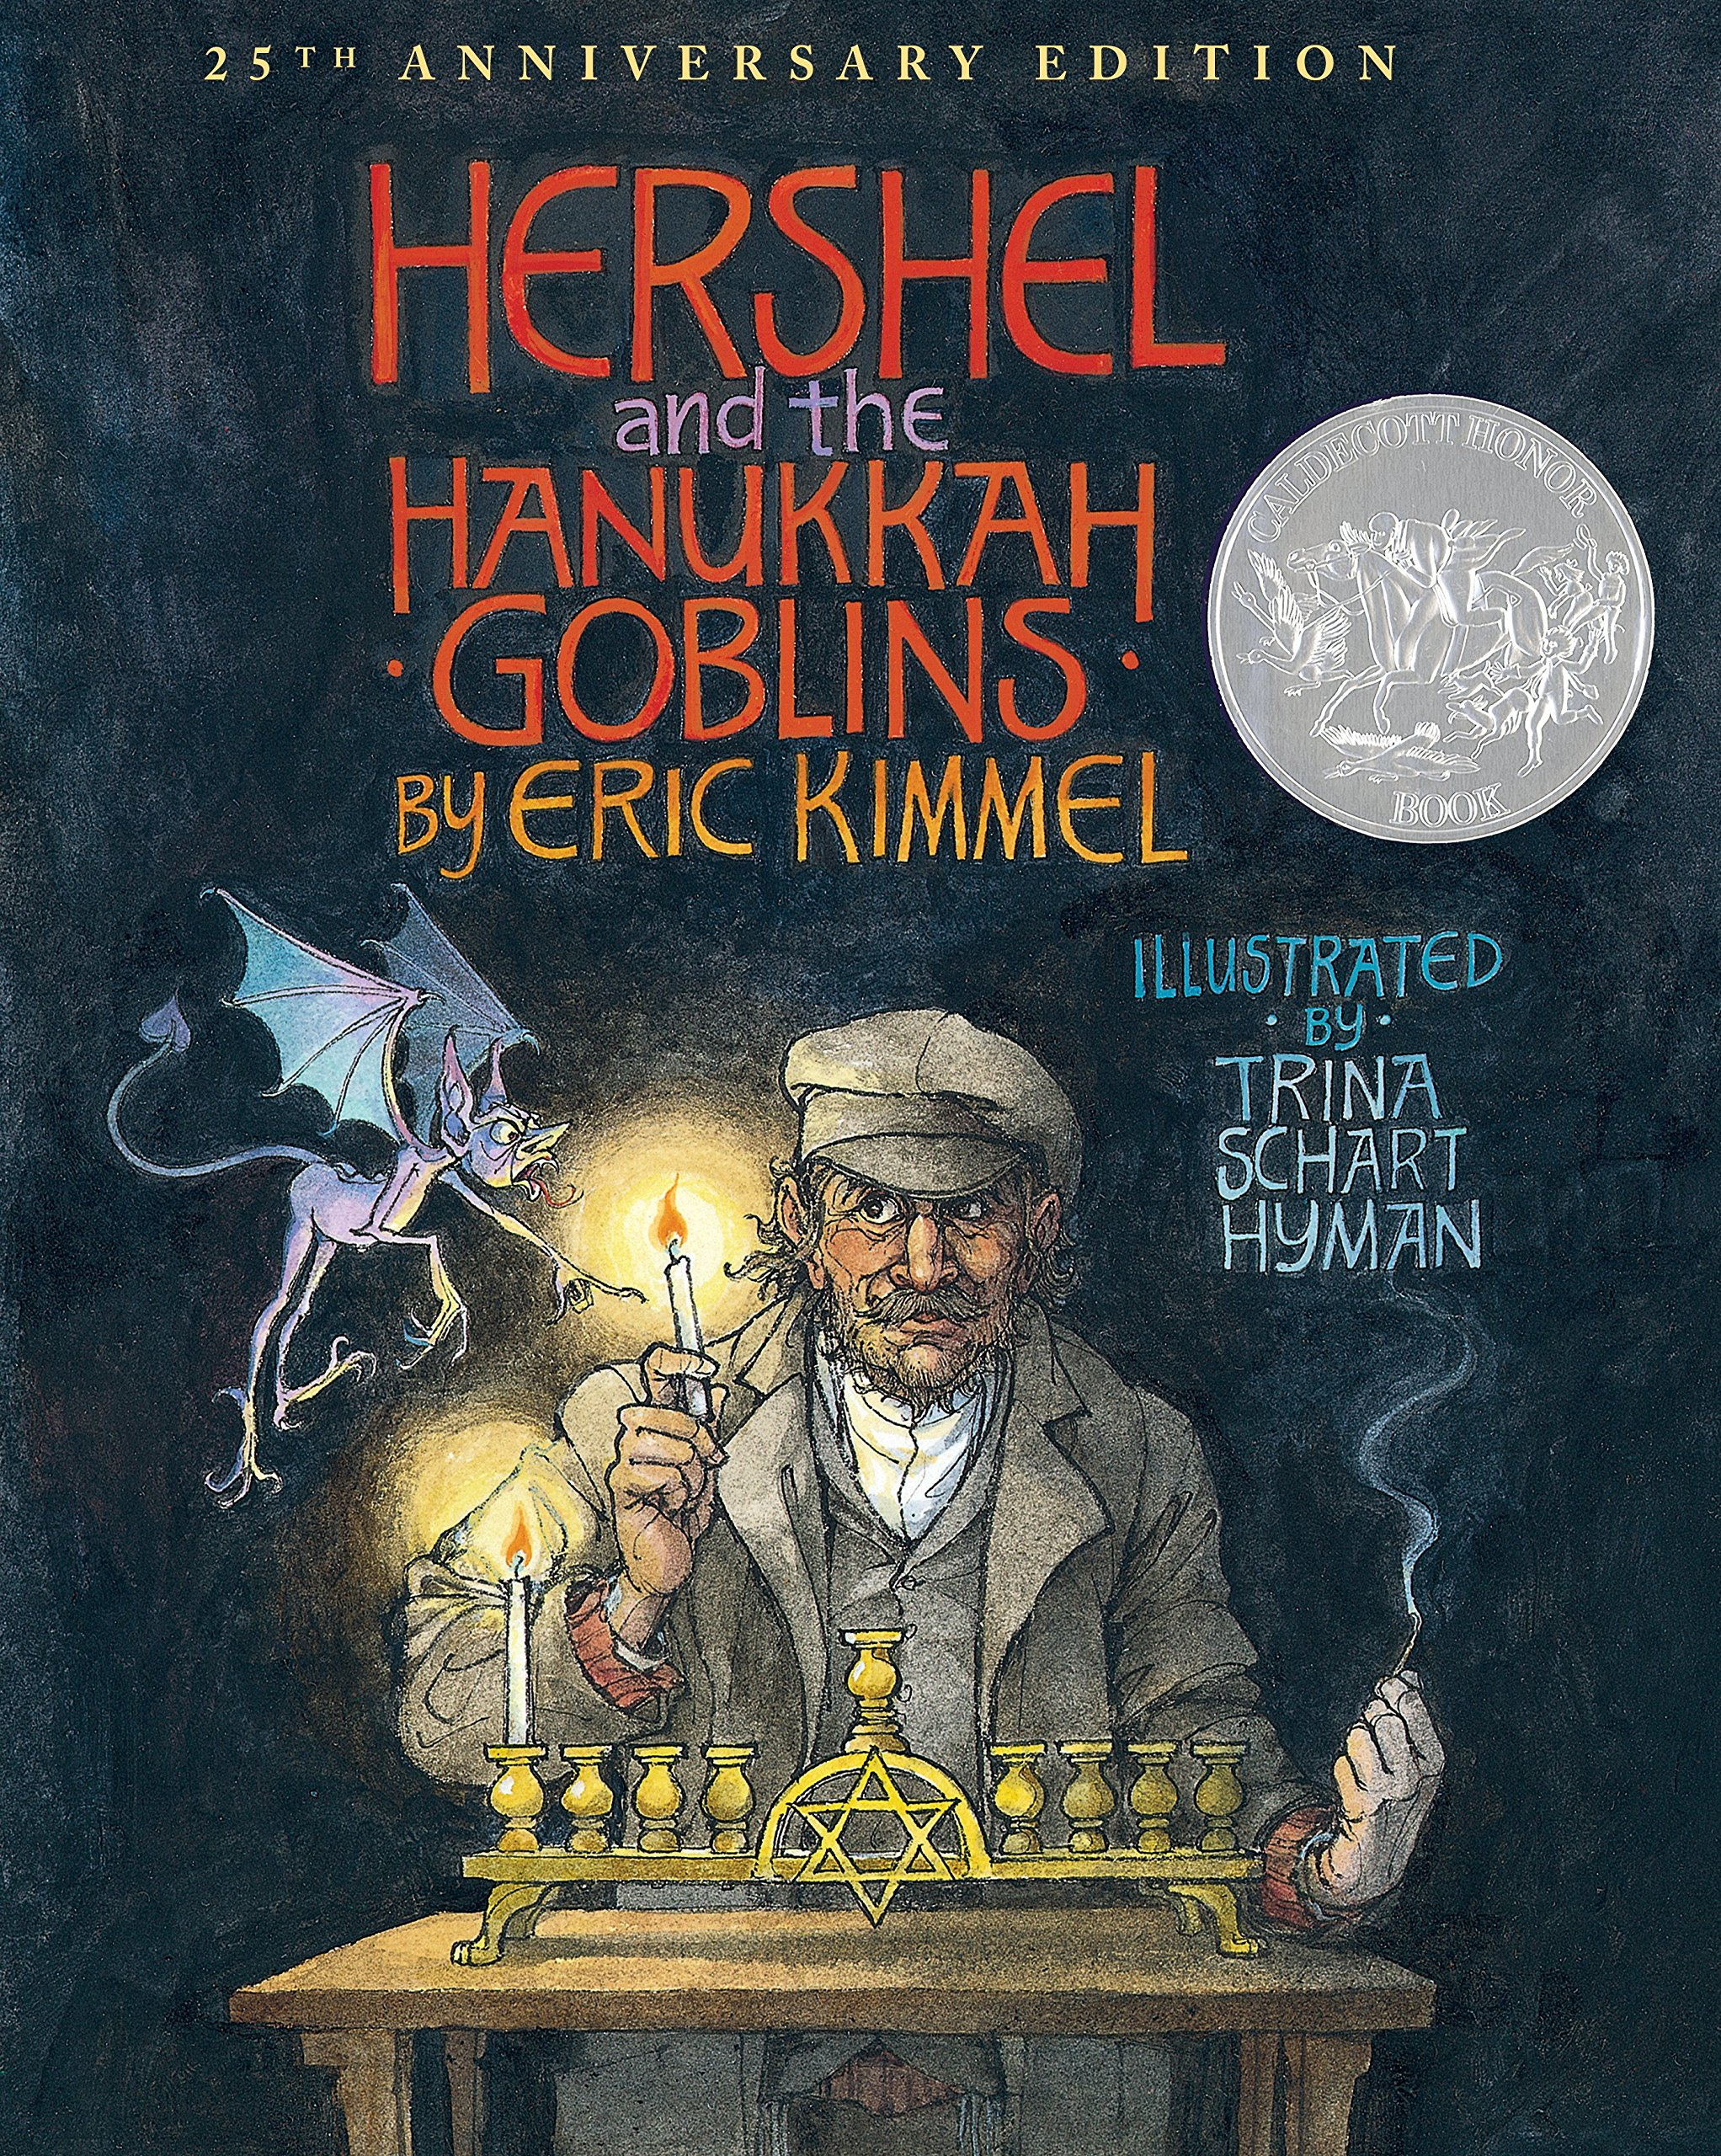 Hershel and the Hanukkah Goblins: 25th Anniversary Edition by Holiday House (Image #1)